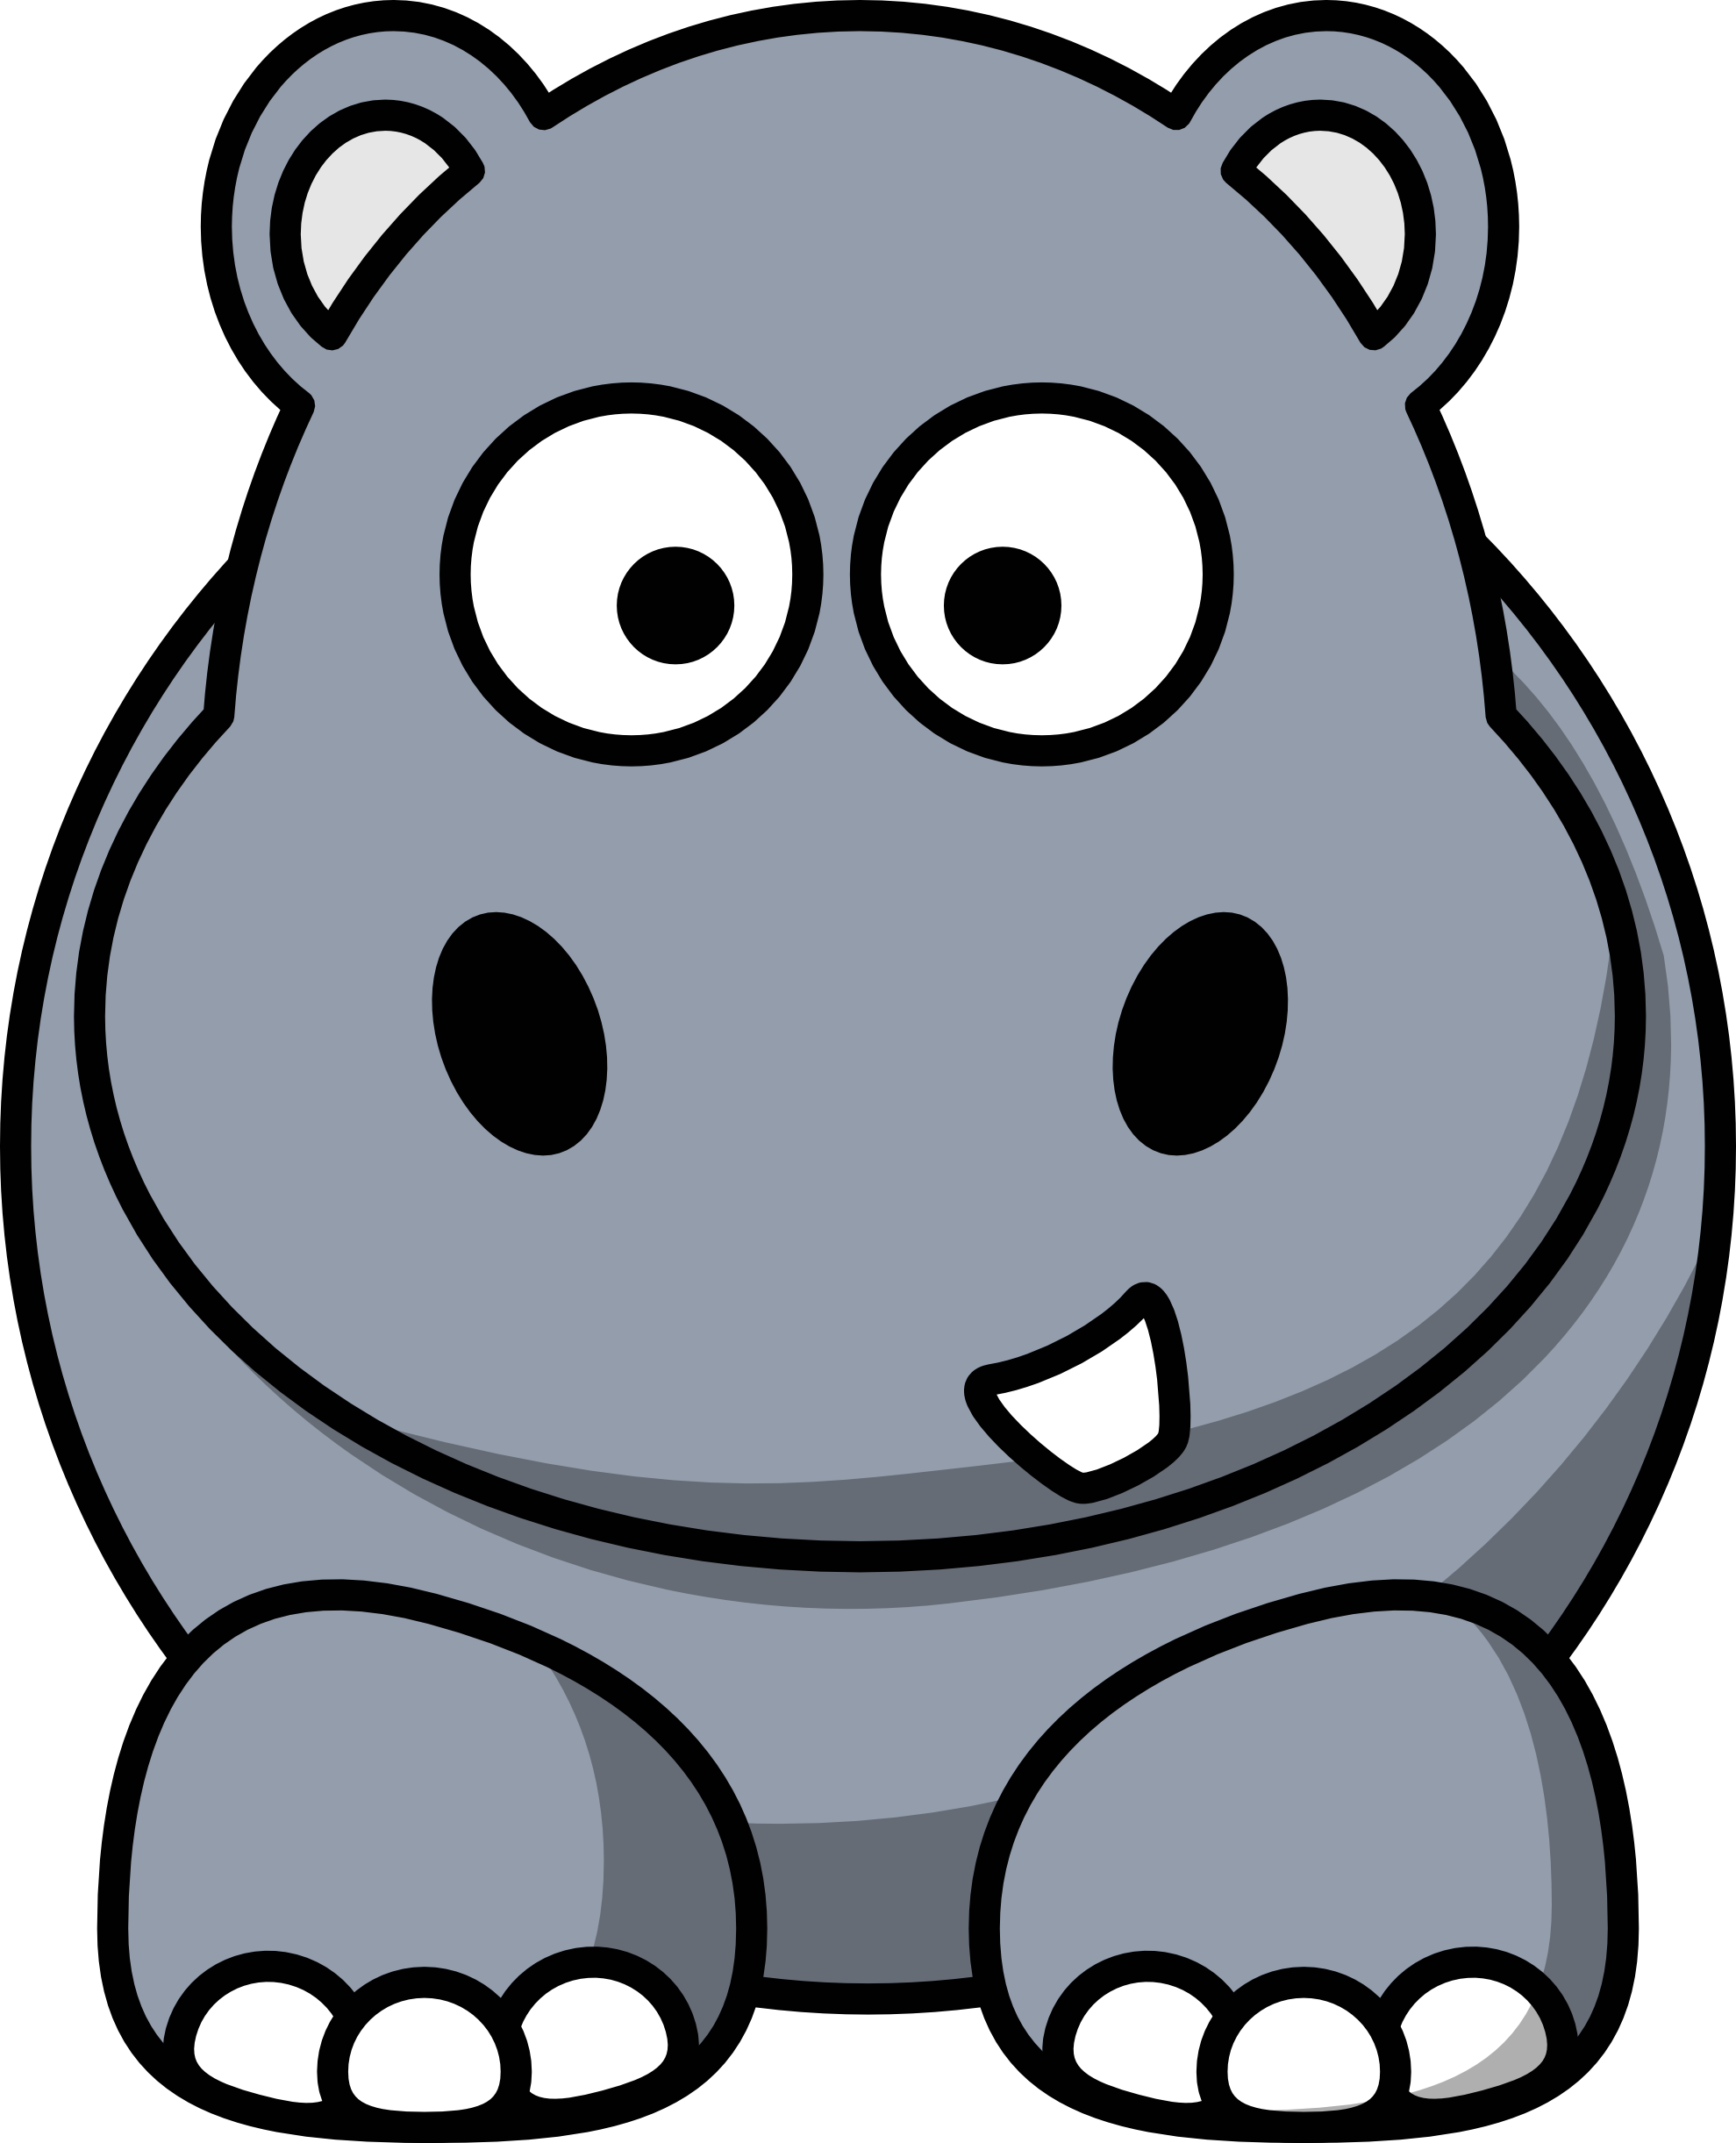 Hippo vector clipart clipart freeuse download Hippo vector graphics clipart image #37243 clipart freeuse download